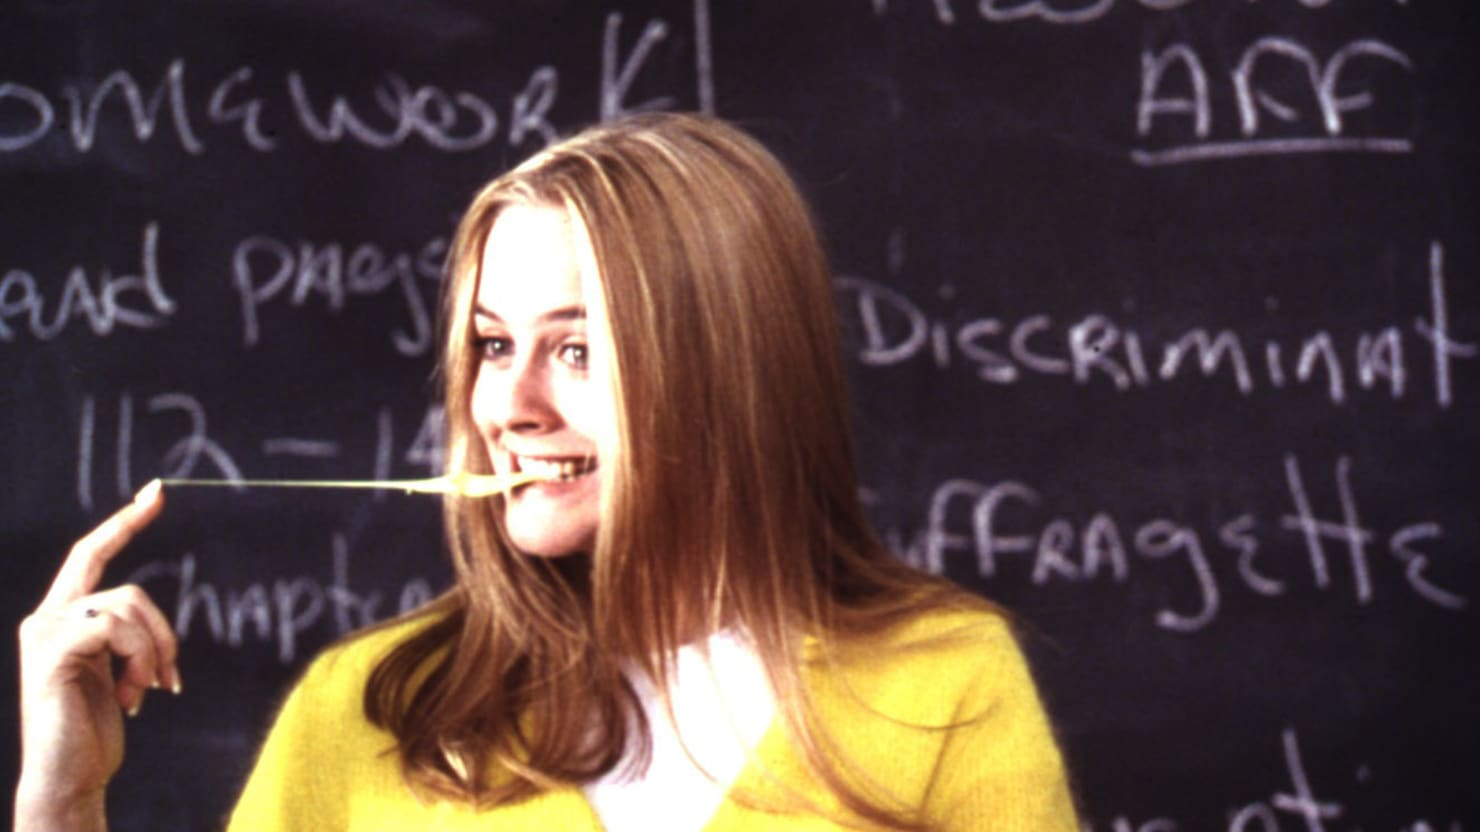 'Clueless' Glossary: Buggin', Cake Boy, & More 90's Slang From the Film